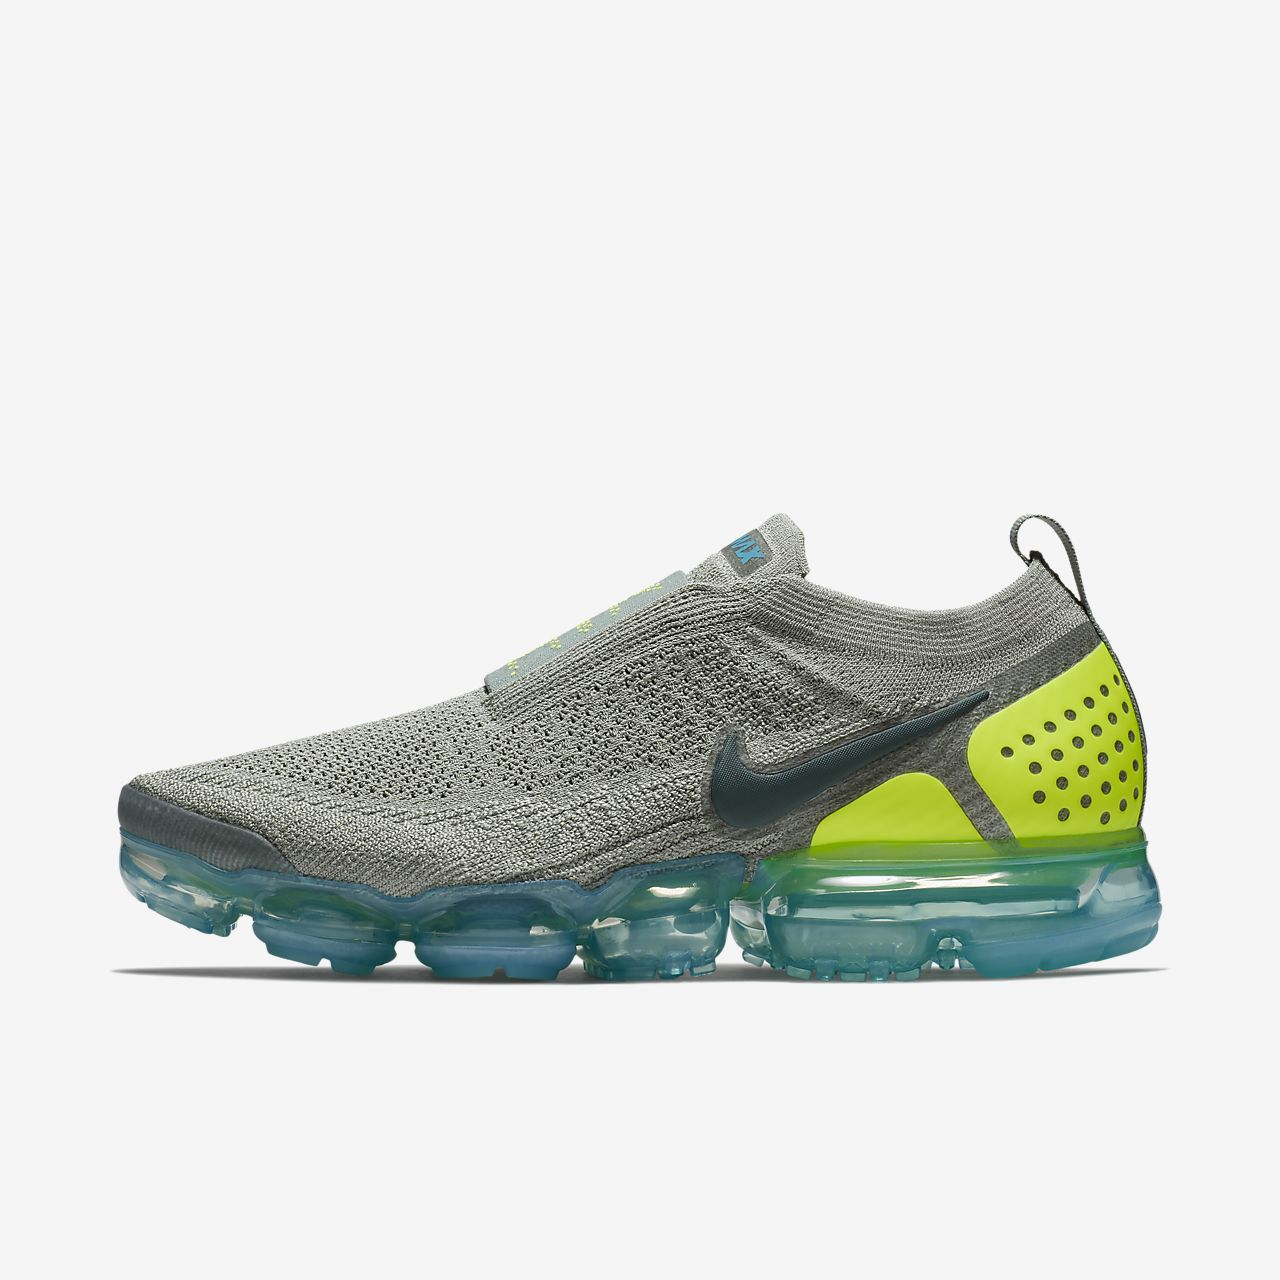 ca8ab5a8bd5 ... where can i buy nike air vapormax flyknit moc 2 shoe 4d1cb 833f8